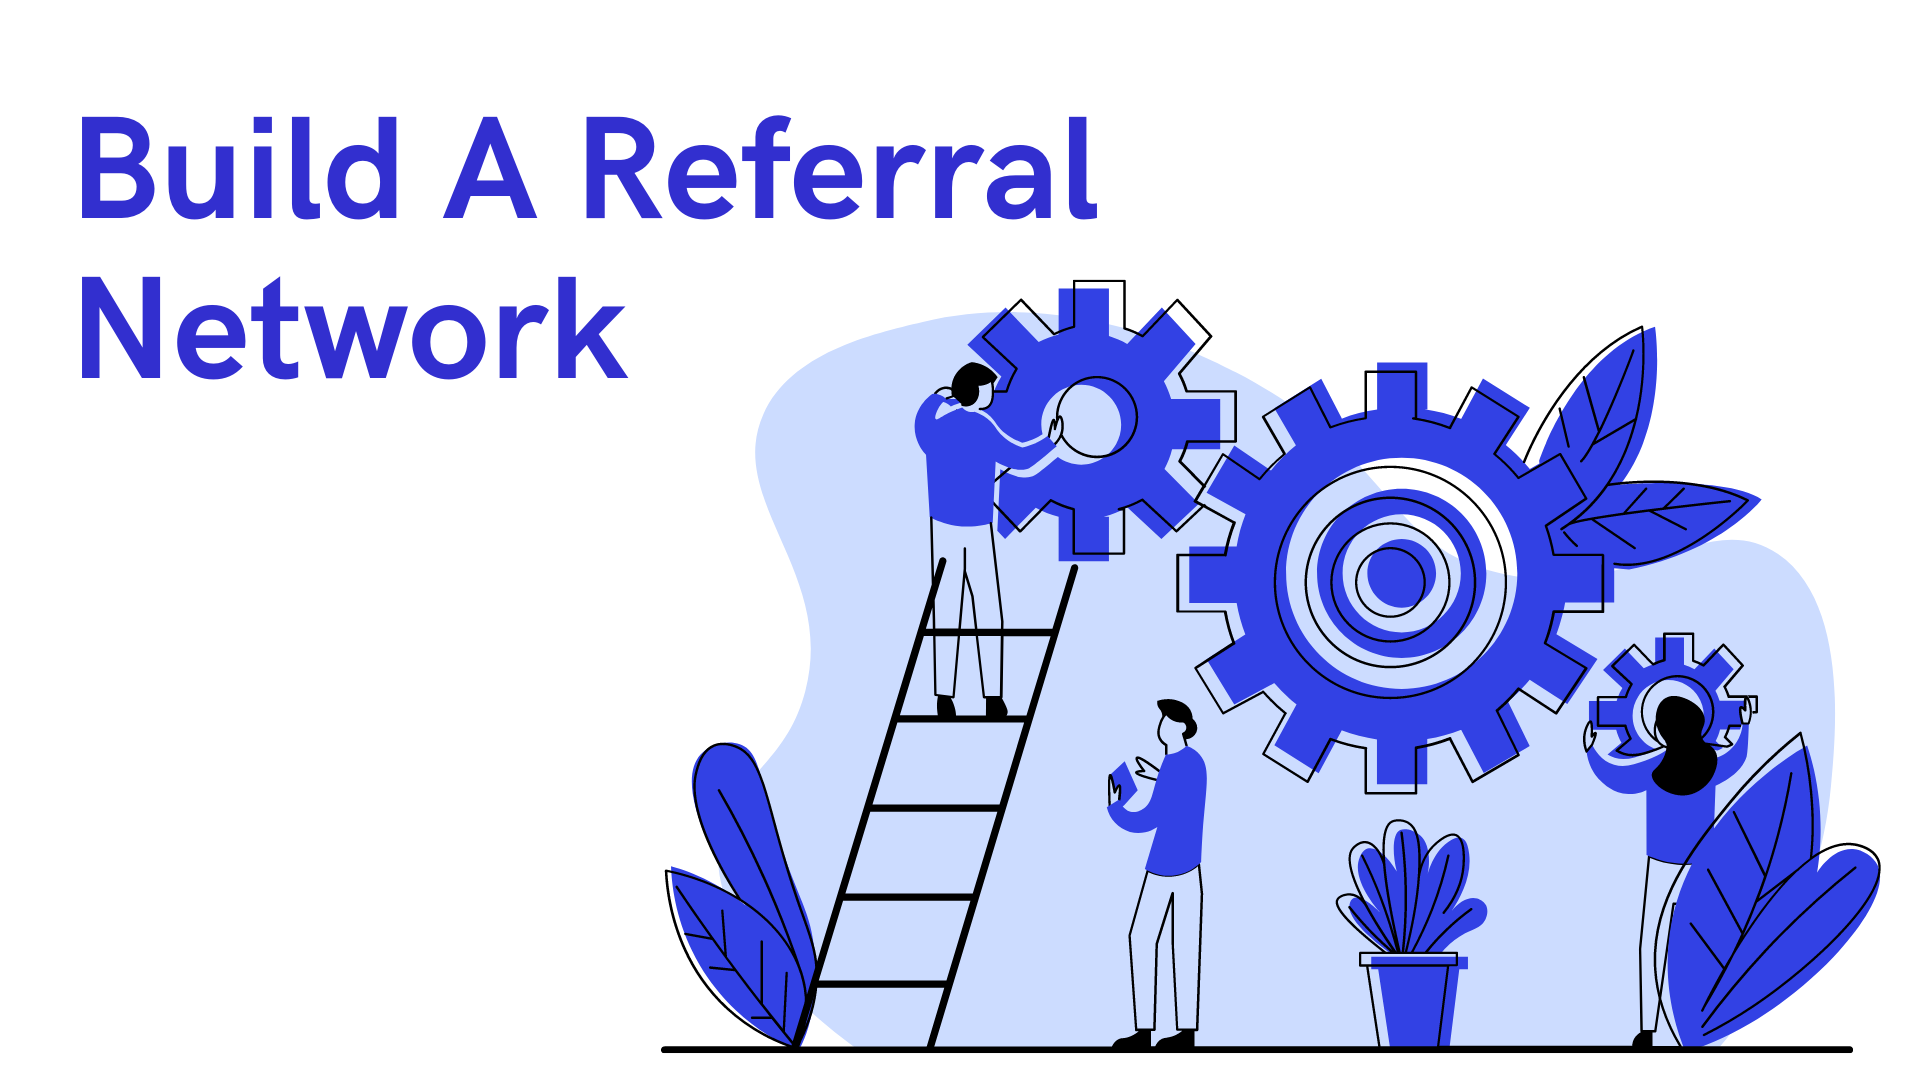 startup marketing strategy Build A Referral Network